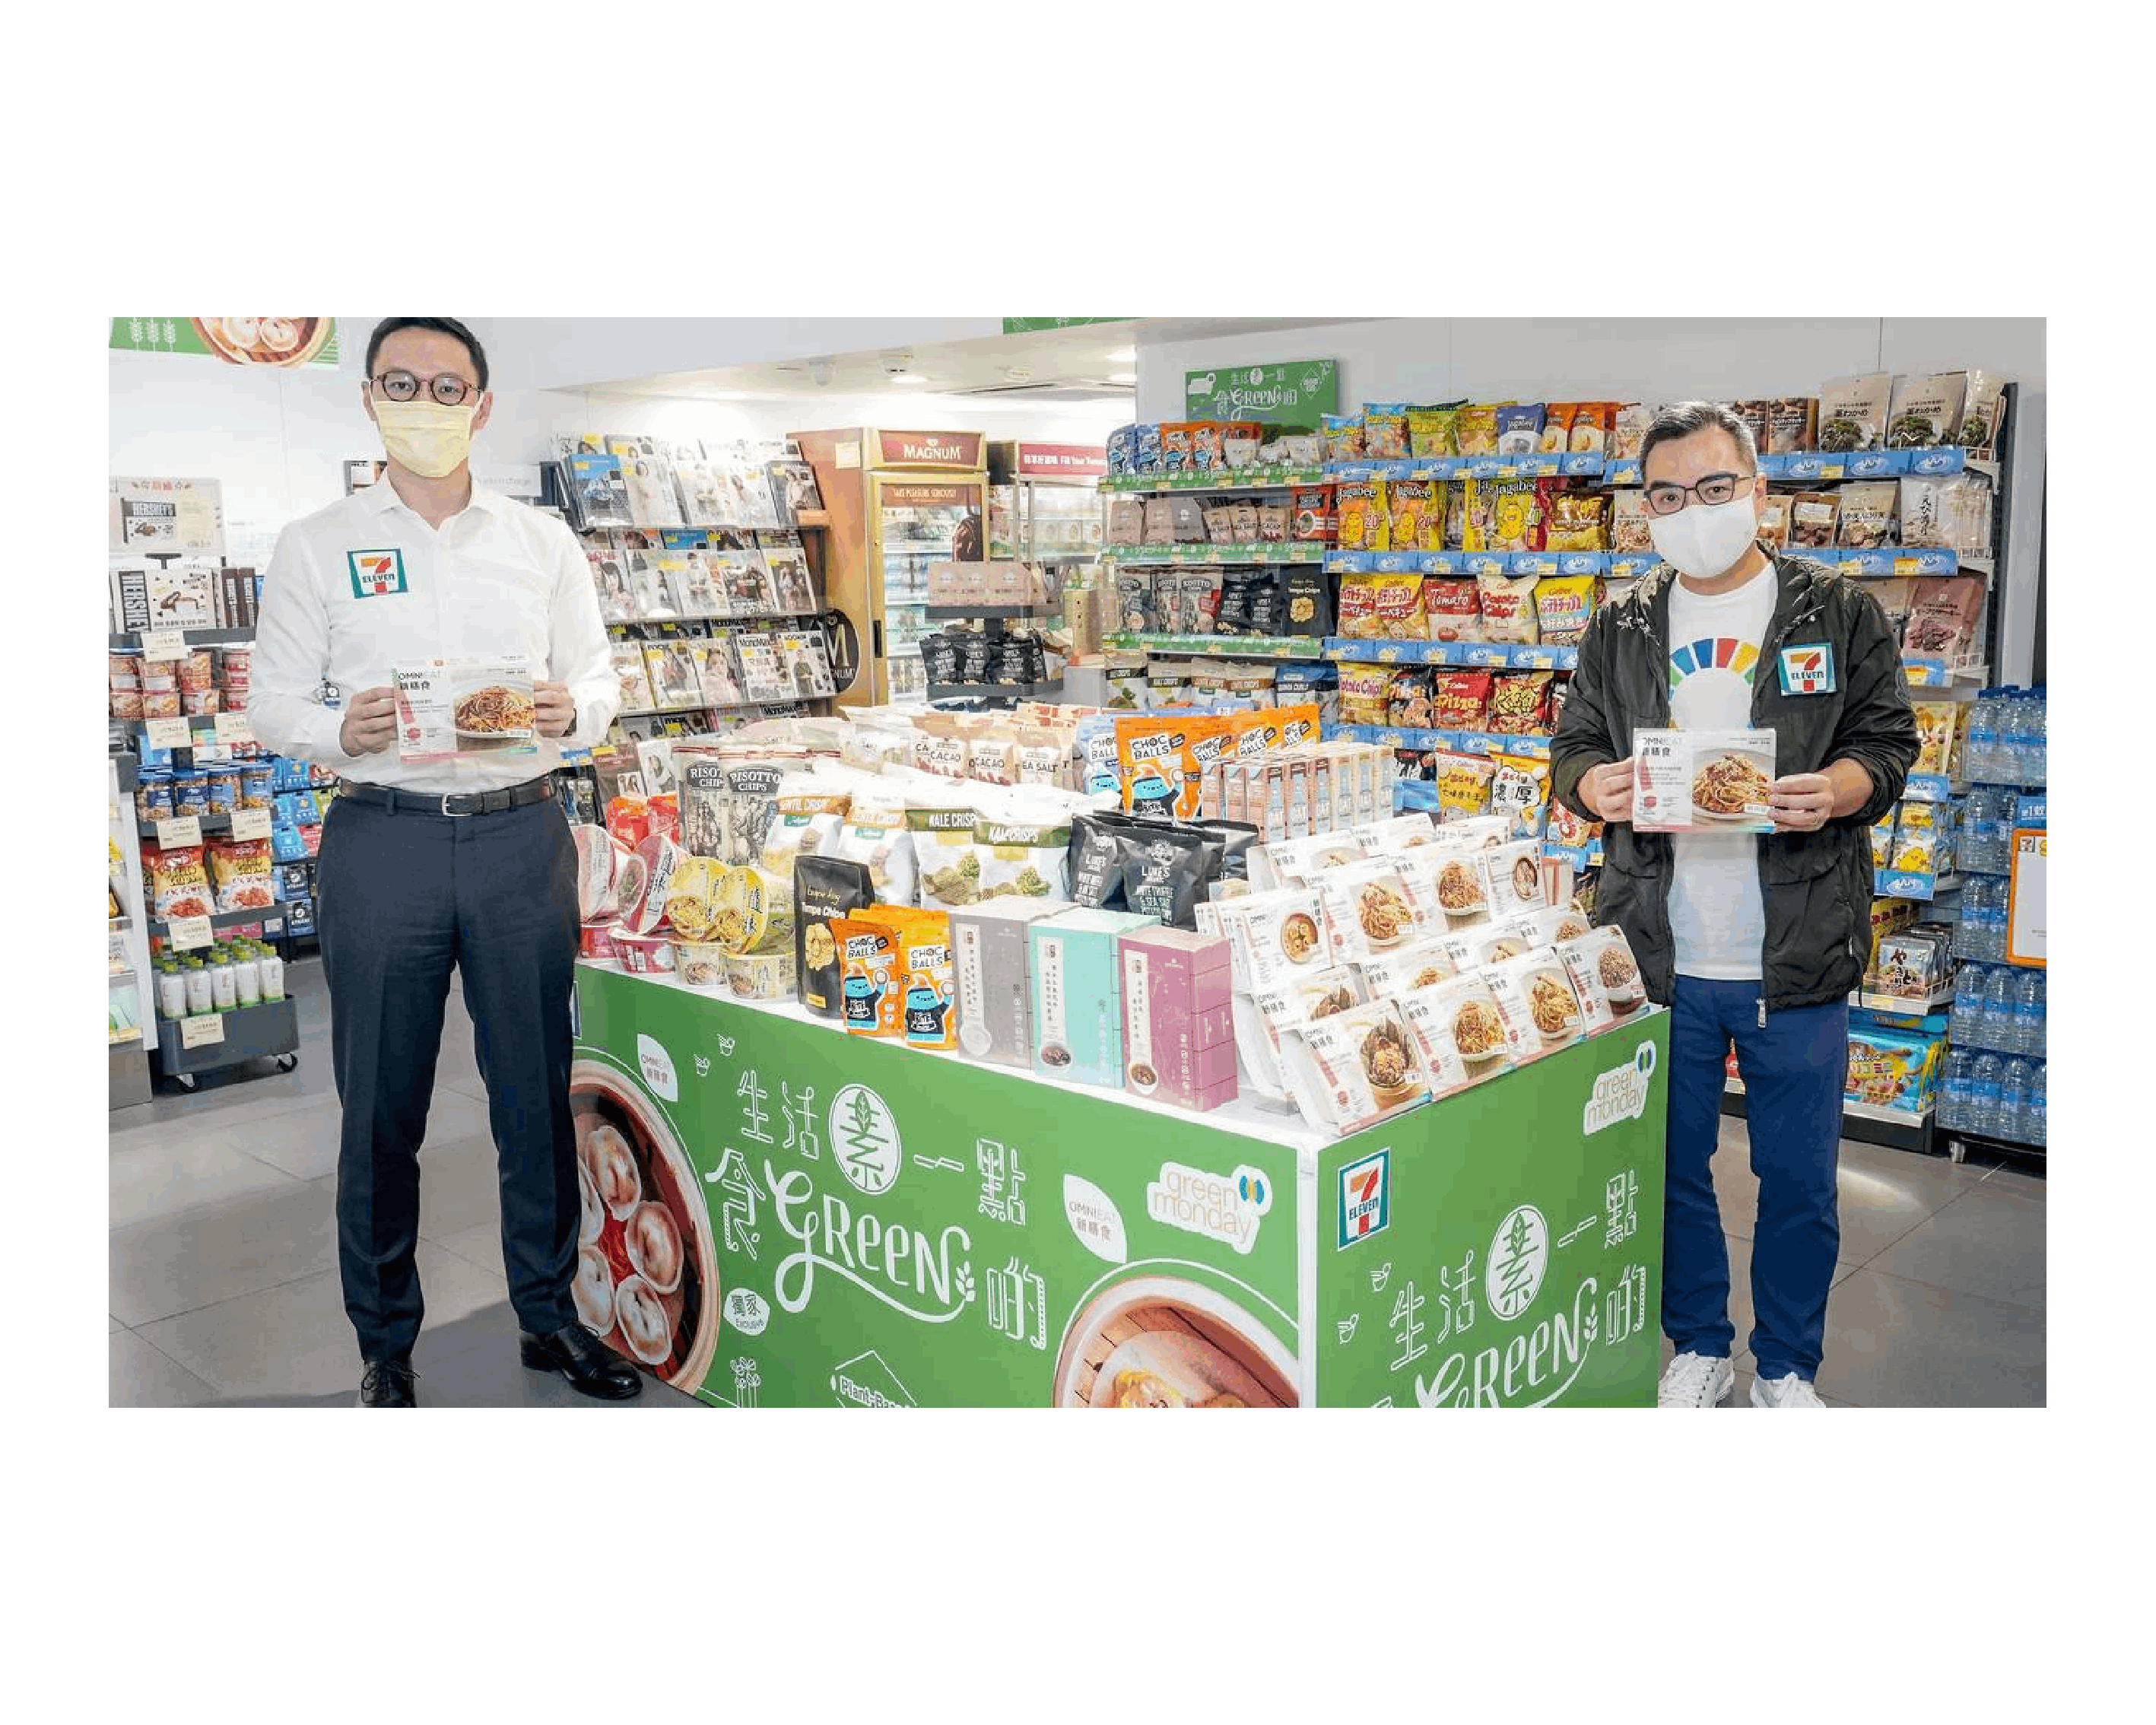 7-Eleven teams up with Green Monday to bring new OmniEat products to over 700 stores